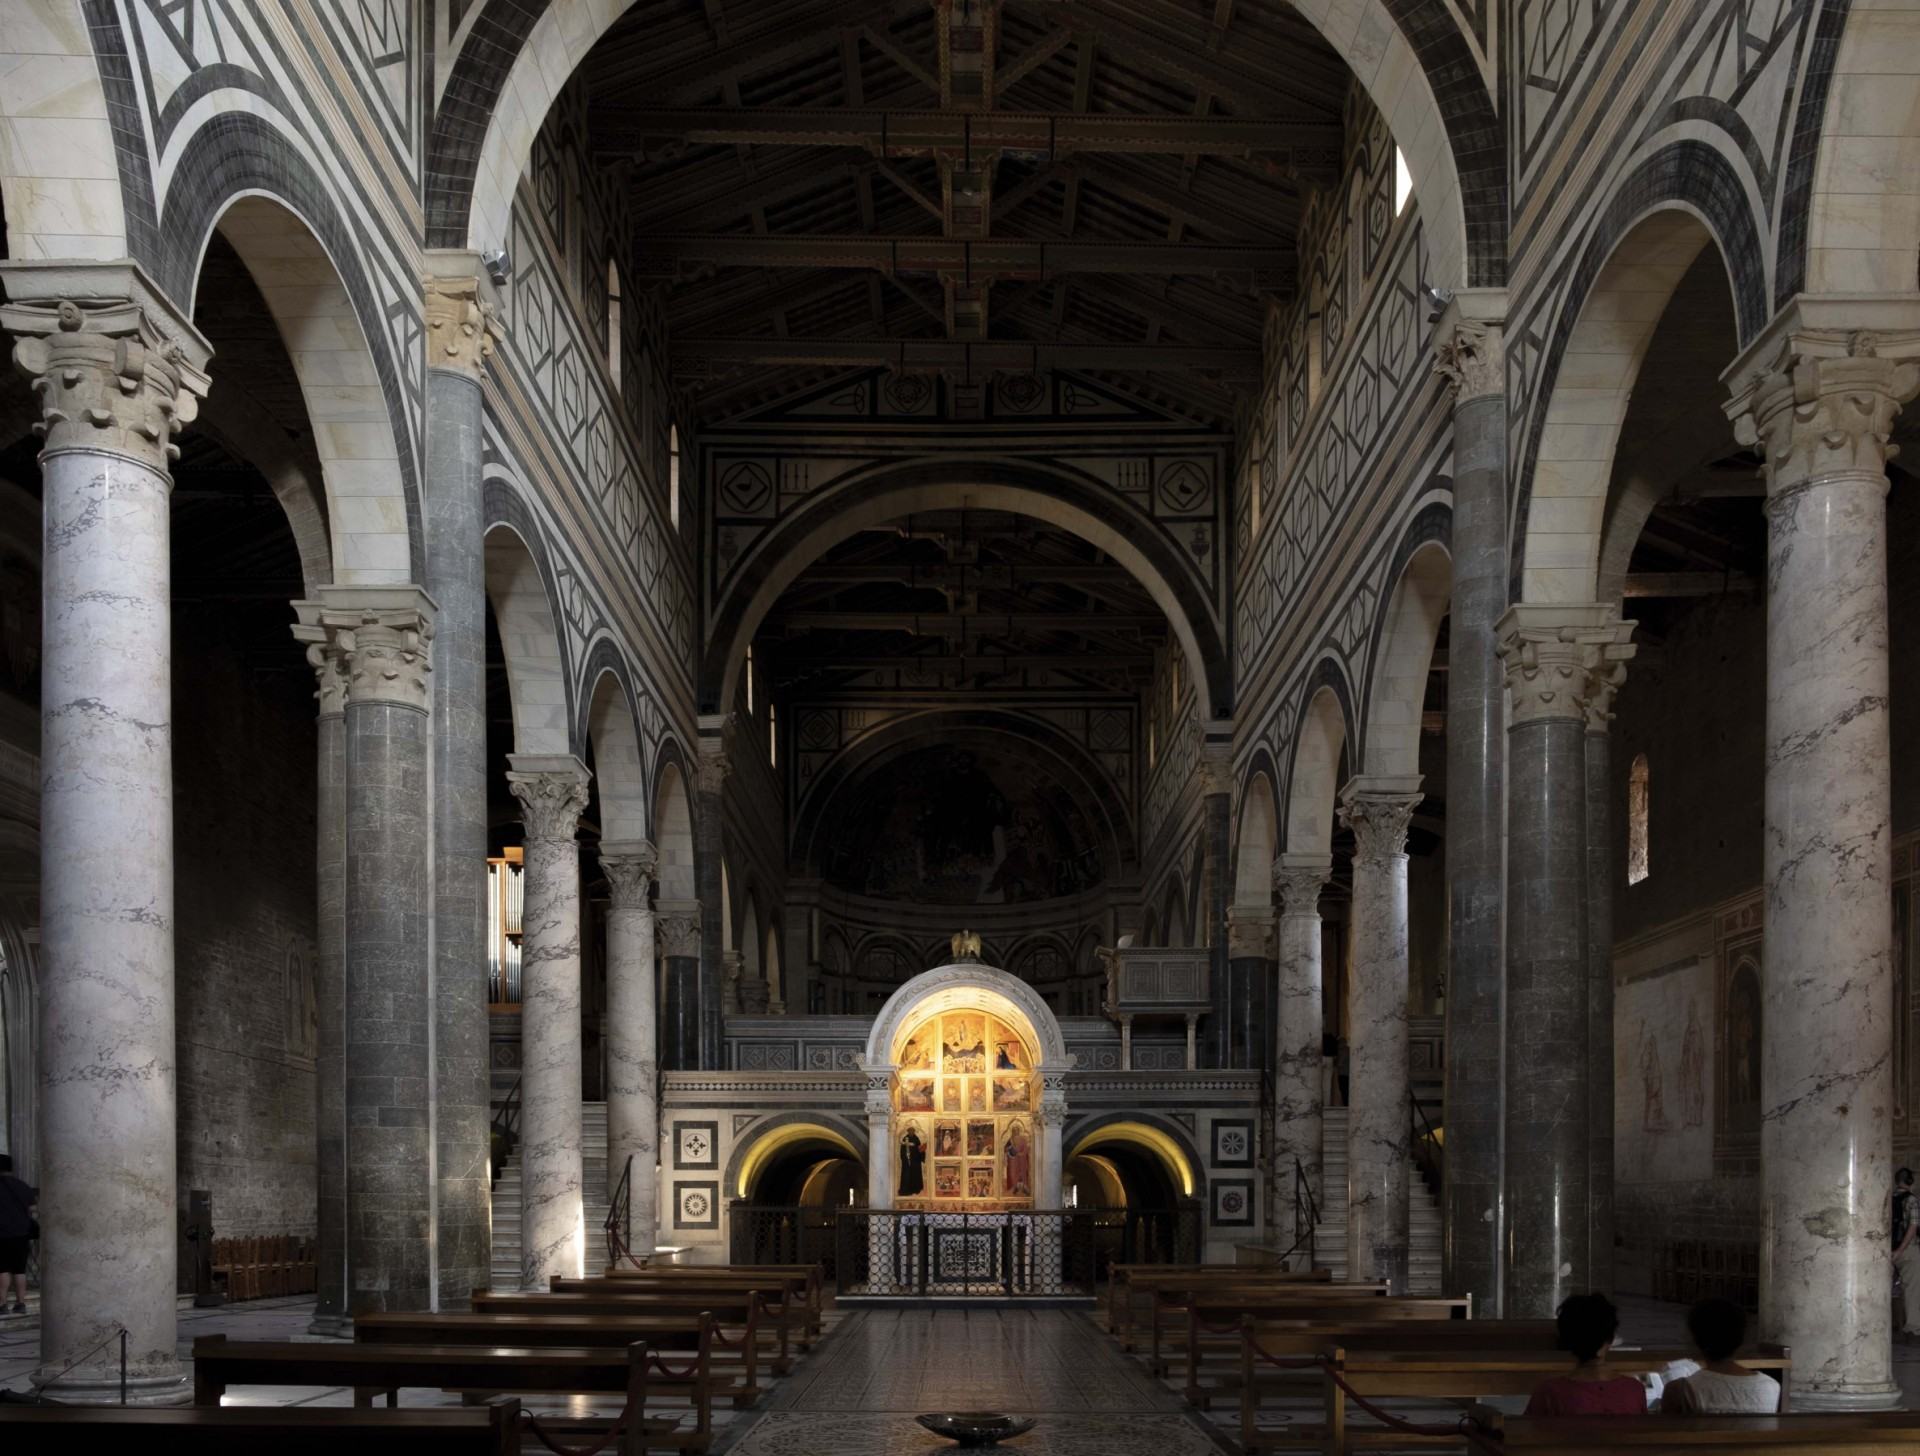 The architectural elements throughout the basilica are tactfully lit in order to allow the contrast between bright daylight and the shadows to effortlessly guide the eyes of visitors towards the presbytery. – Matteo Bencini - Matteo Trentanove